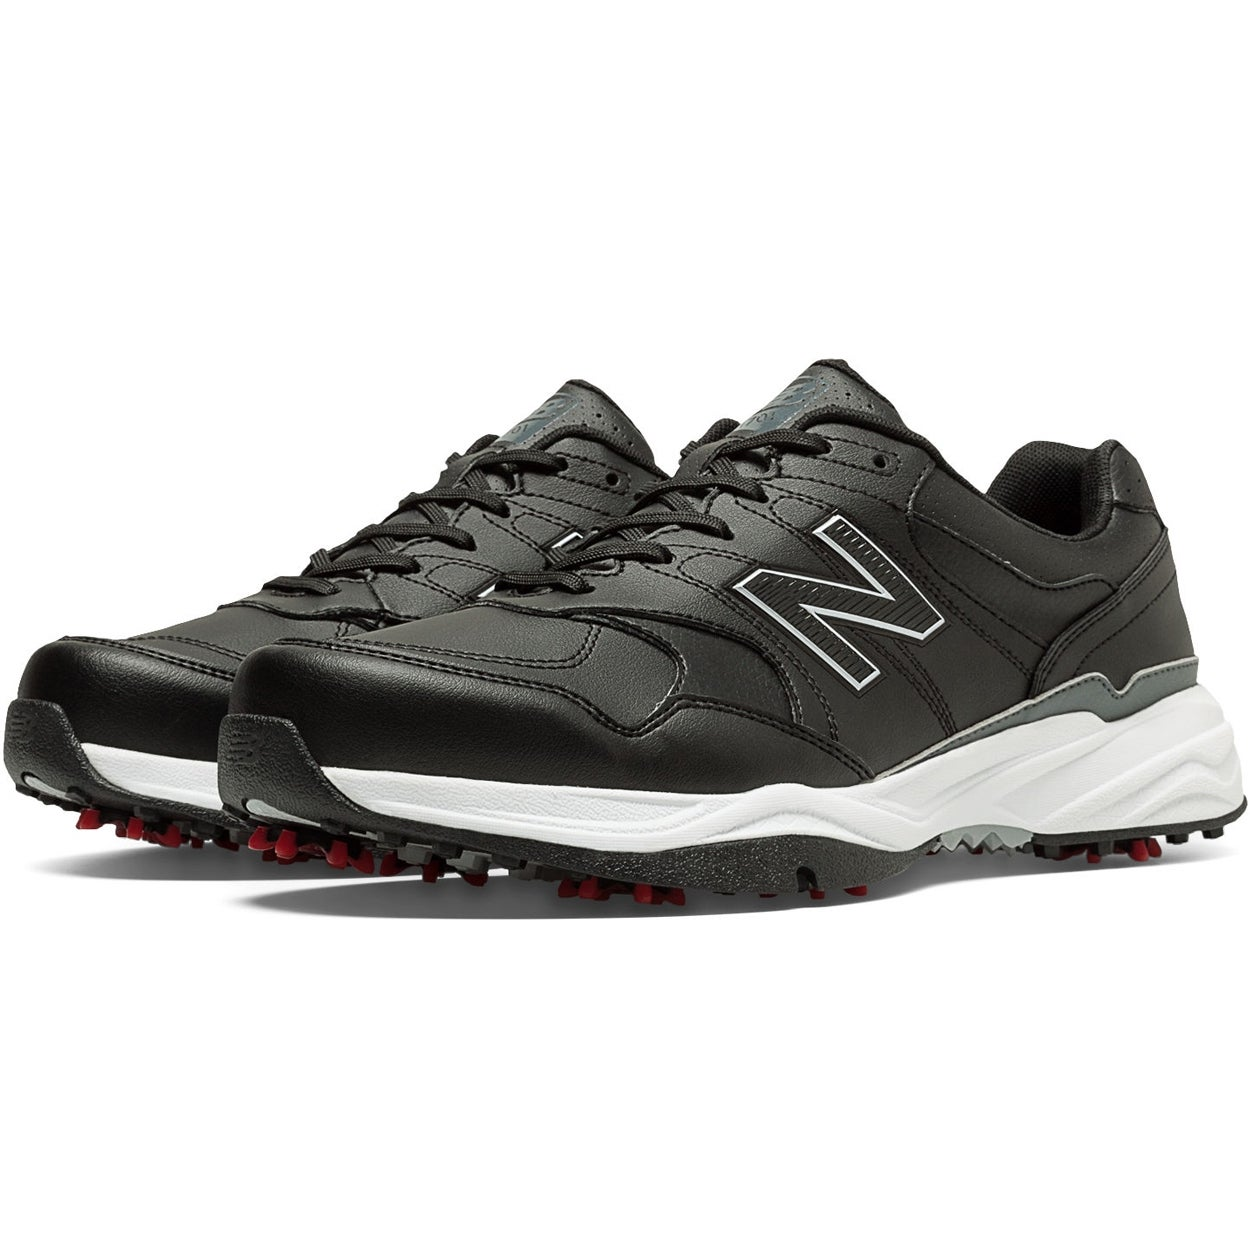 new arrival 36950 7d17a Buy Size 11.5 Men s Golf Shoes Online at Overstock   Our Best Golf Shoes  Deals